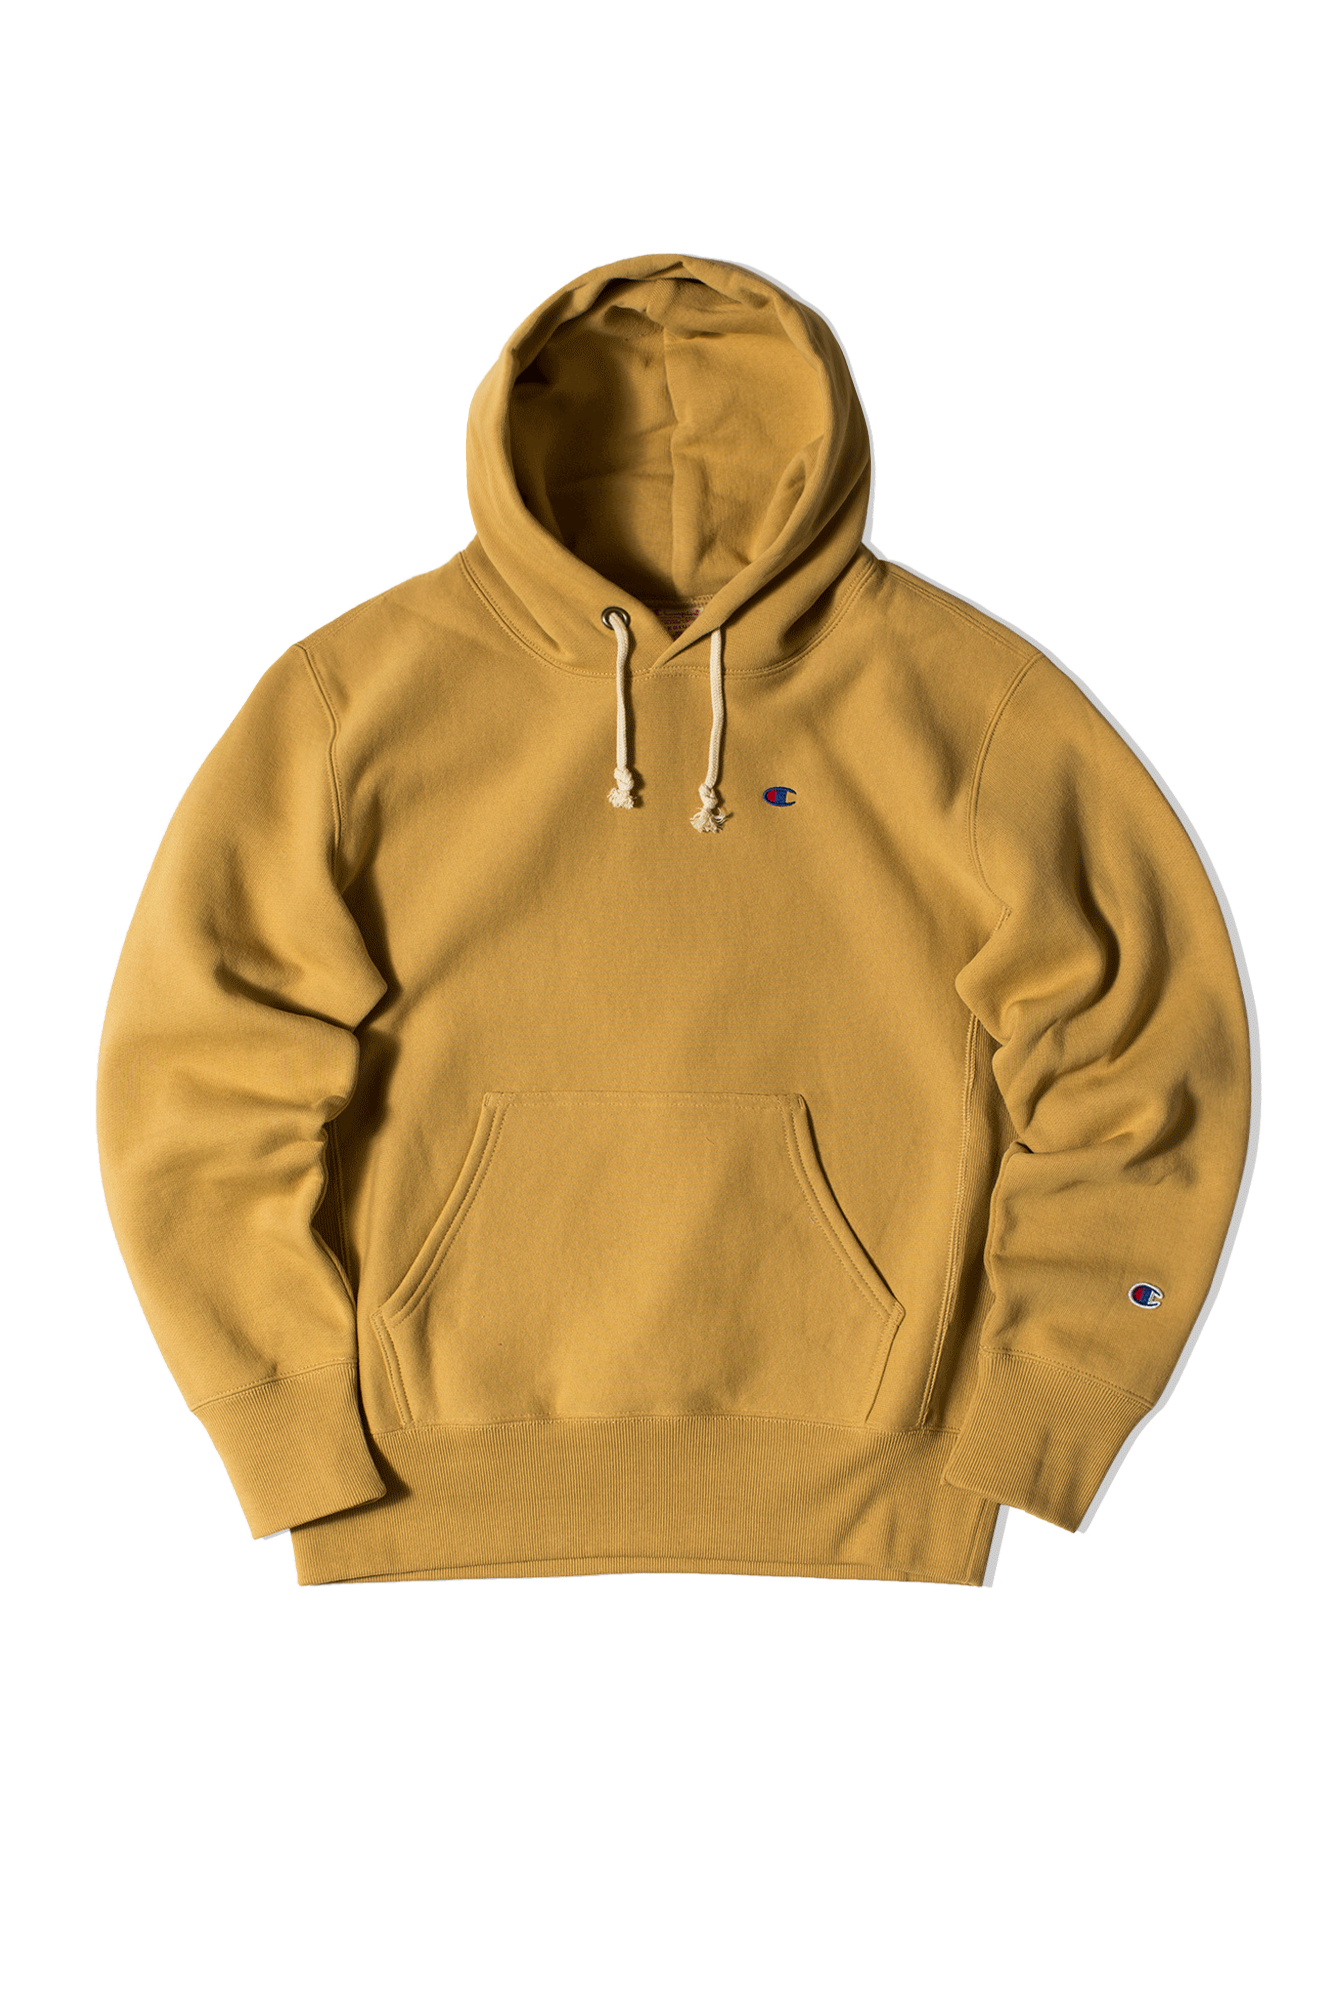 Hooded sweatshirt Yellow